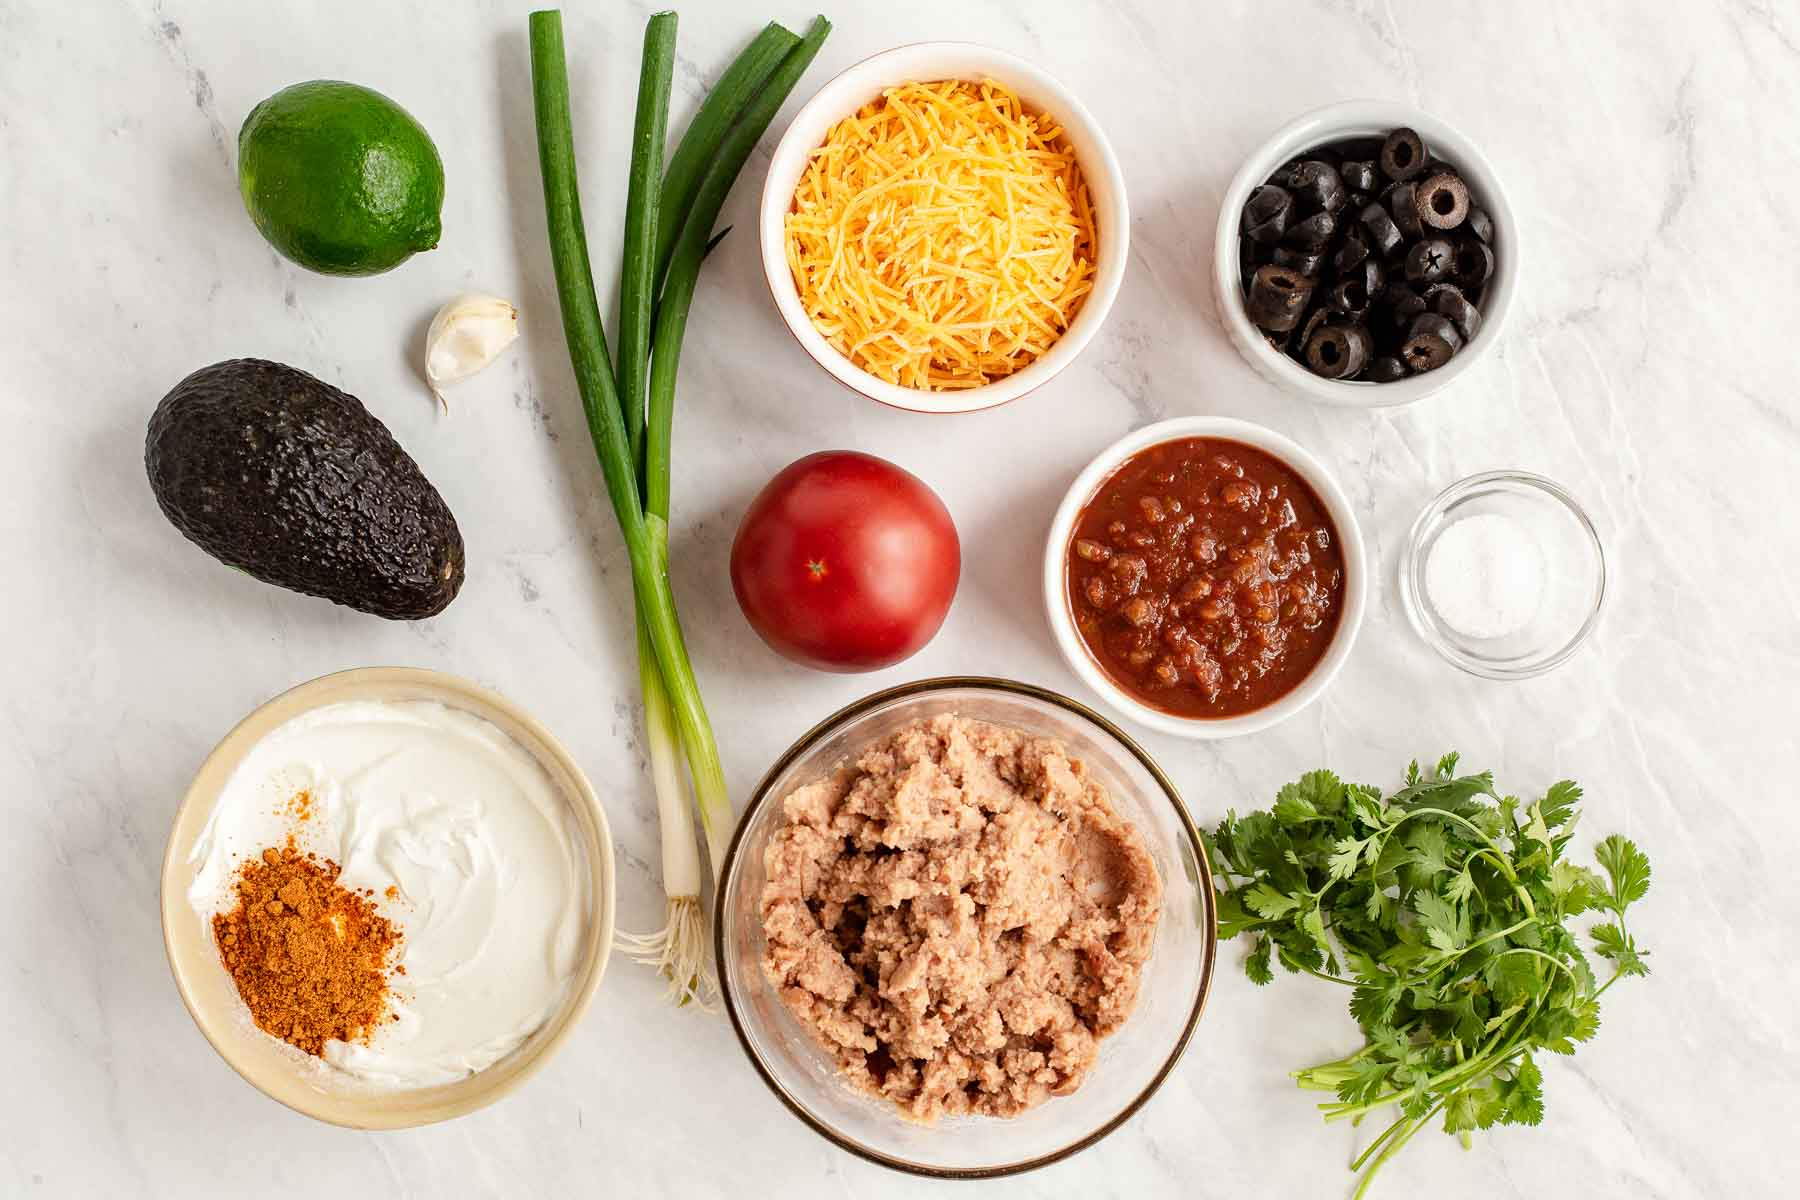 Ingredients in small bowls for making seven layer dip.